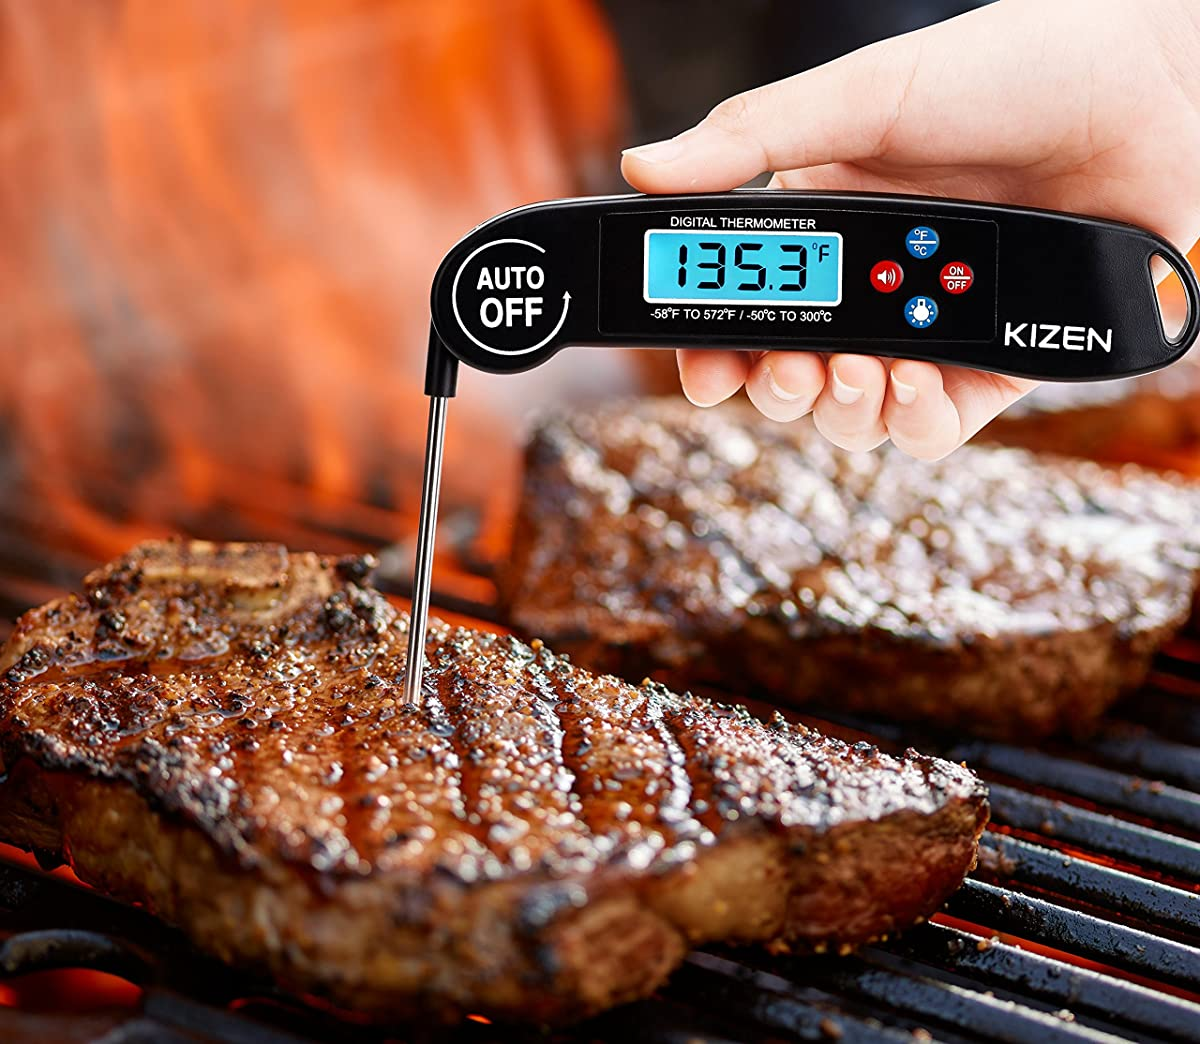 Kizen Digital Meat & Cooking Thermometer - Instant Read, Talking, Back Light, Collapsible Probe, Auto-off. Comes in Premium Gift Box, with eCookbook. For Food, Kitchen, BBQ, Grill! (Black)